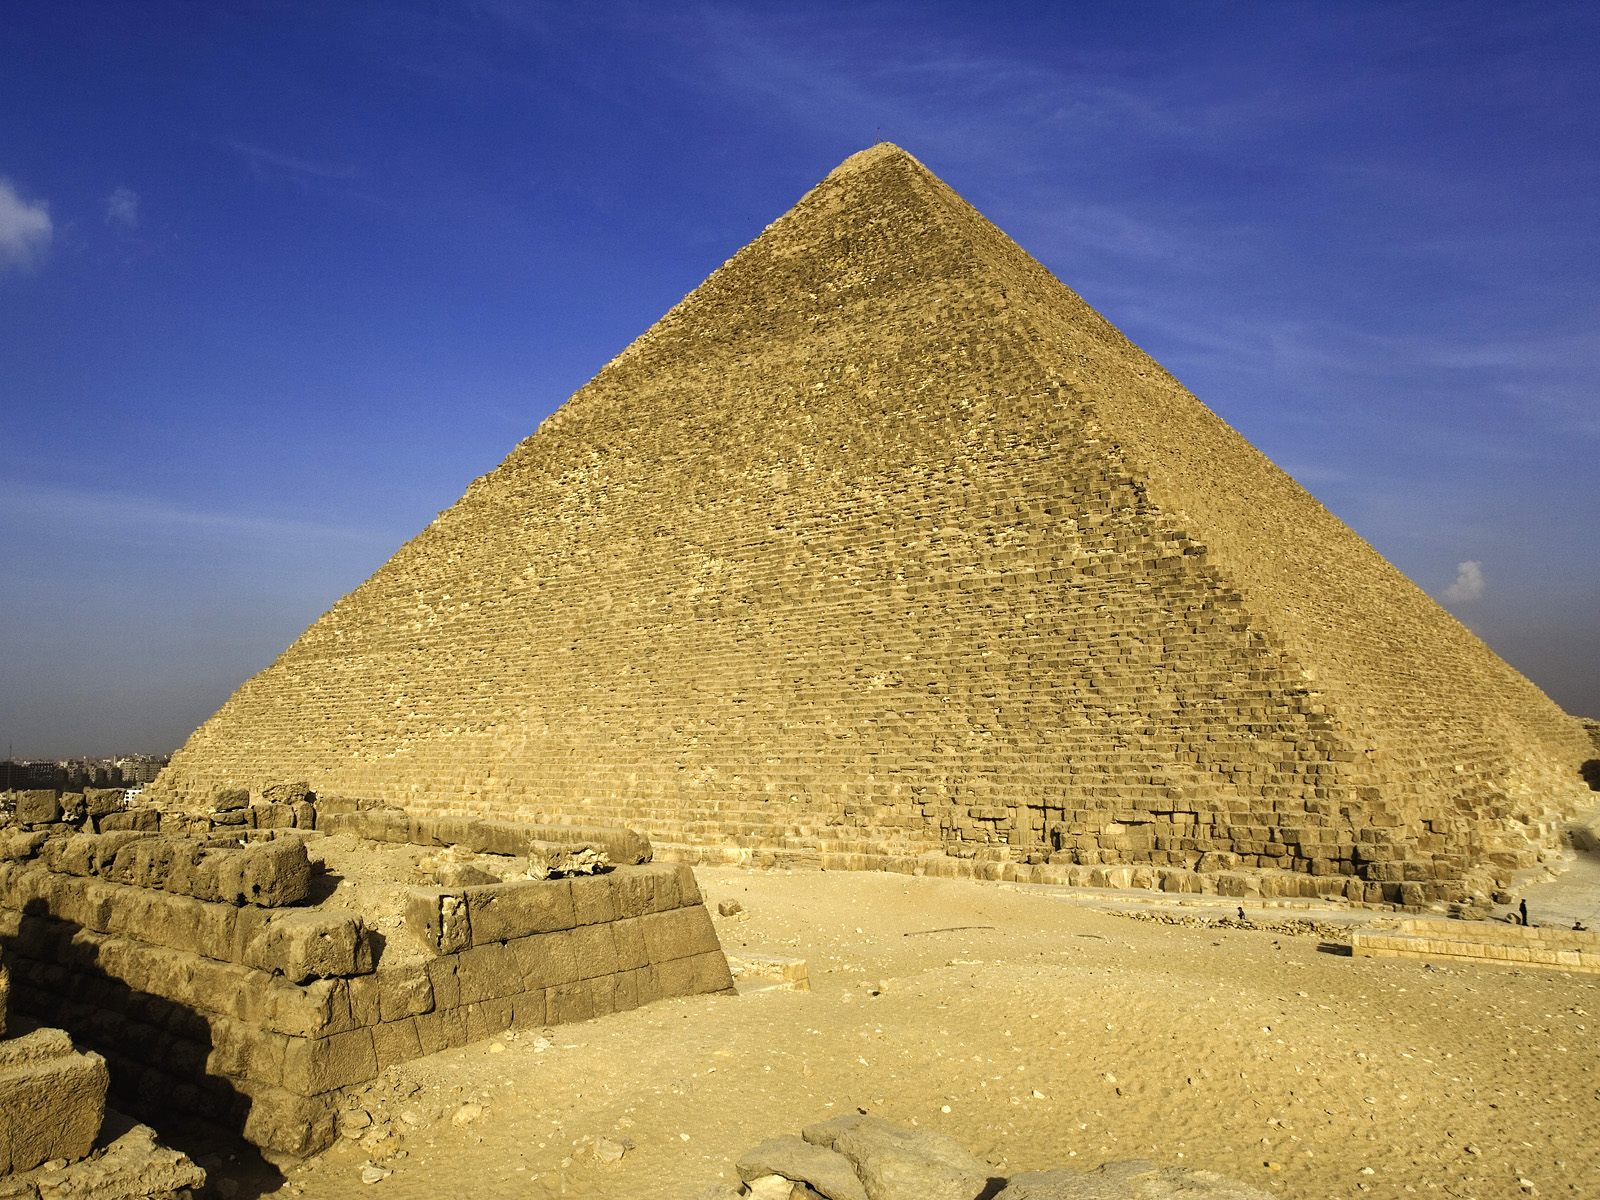 egypt the pyramids Most people just know the egyptian pyramids are big, impressive structures built very long time ago in the ancient egypt it is also generally known that the pyramids served as monumental burial sites where the pharaohs, the ancient egyptian kings, were buried.